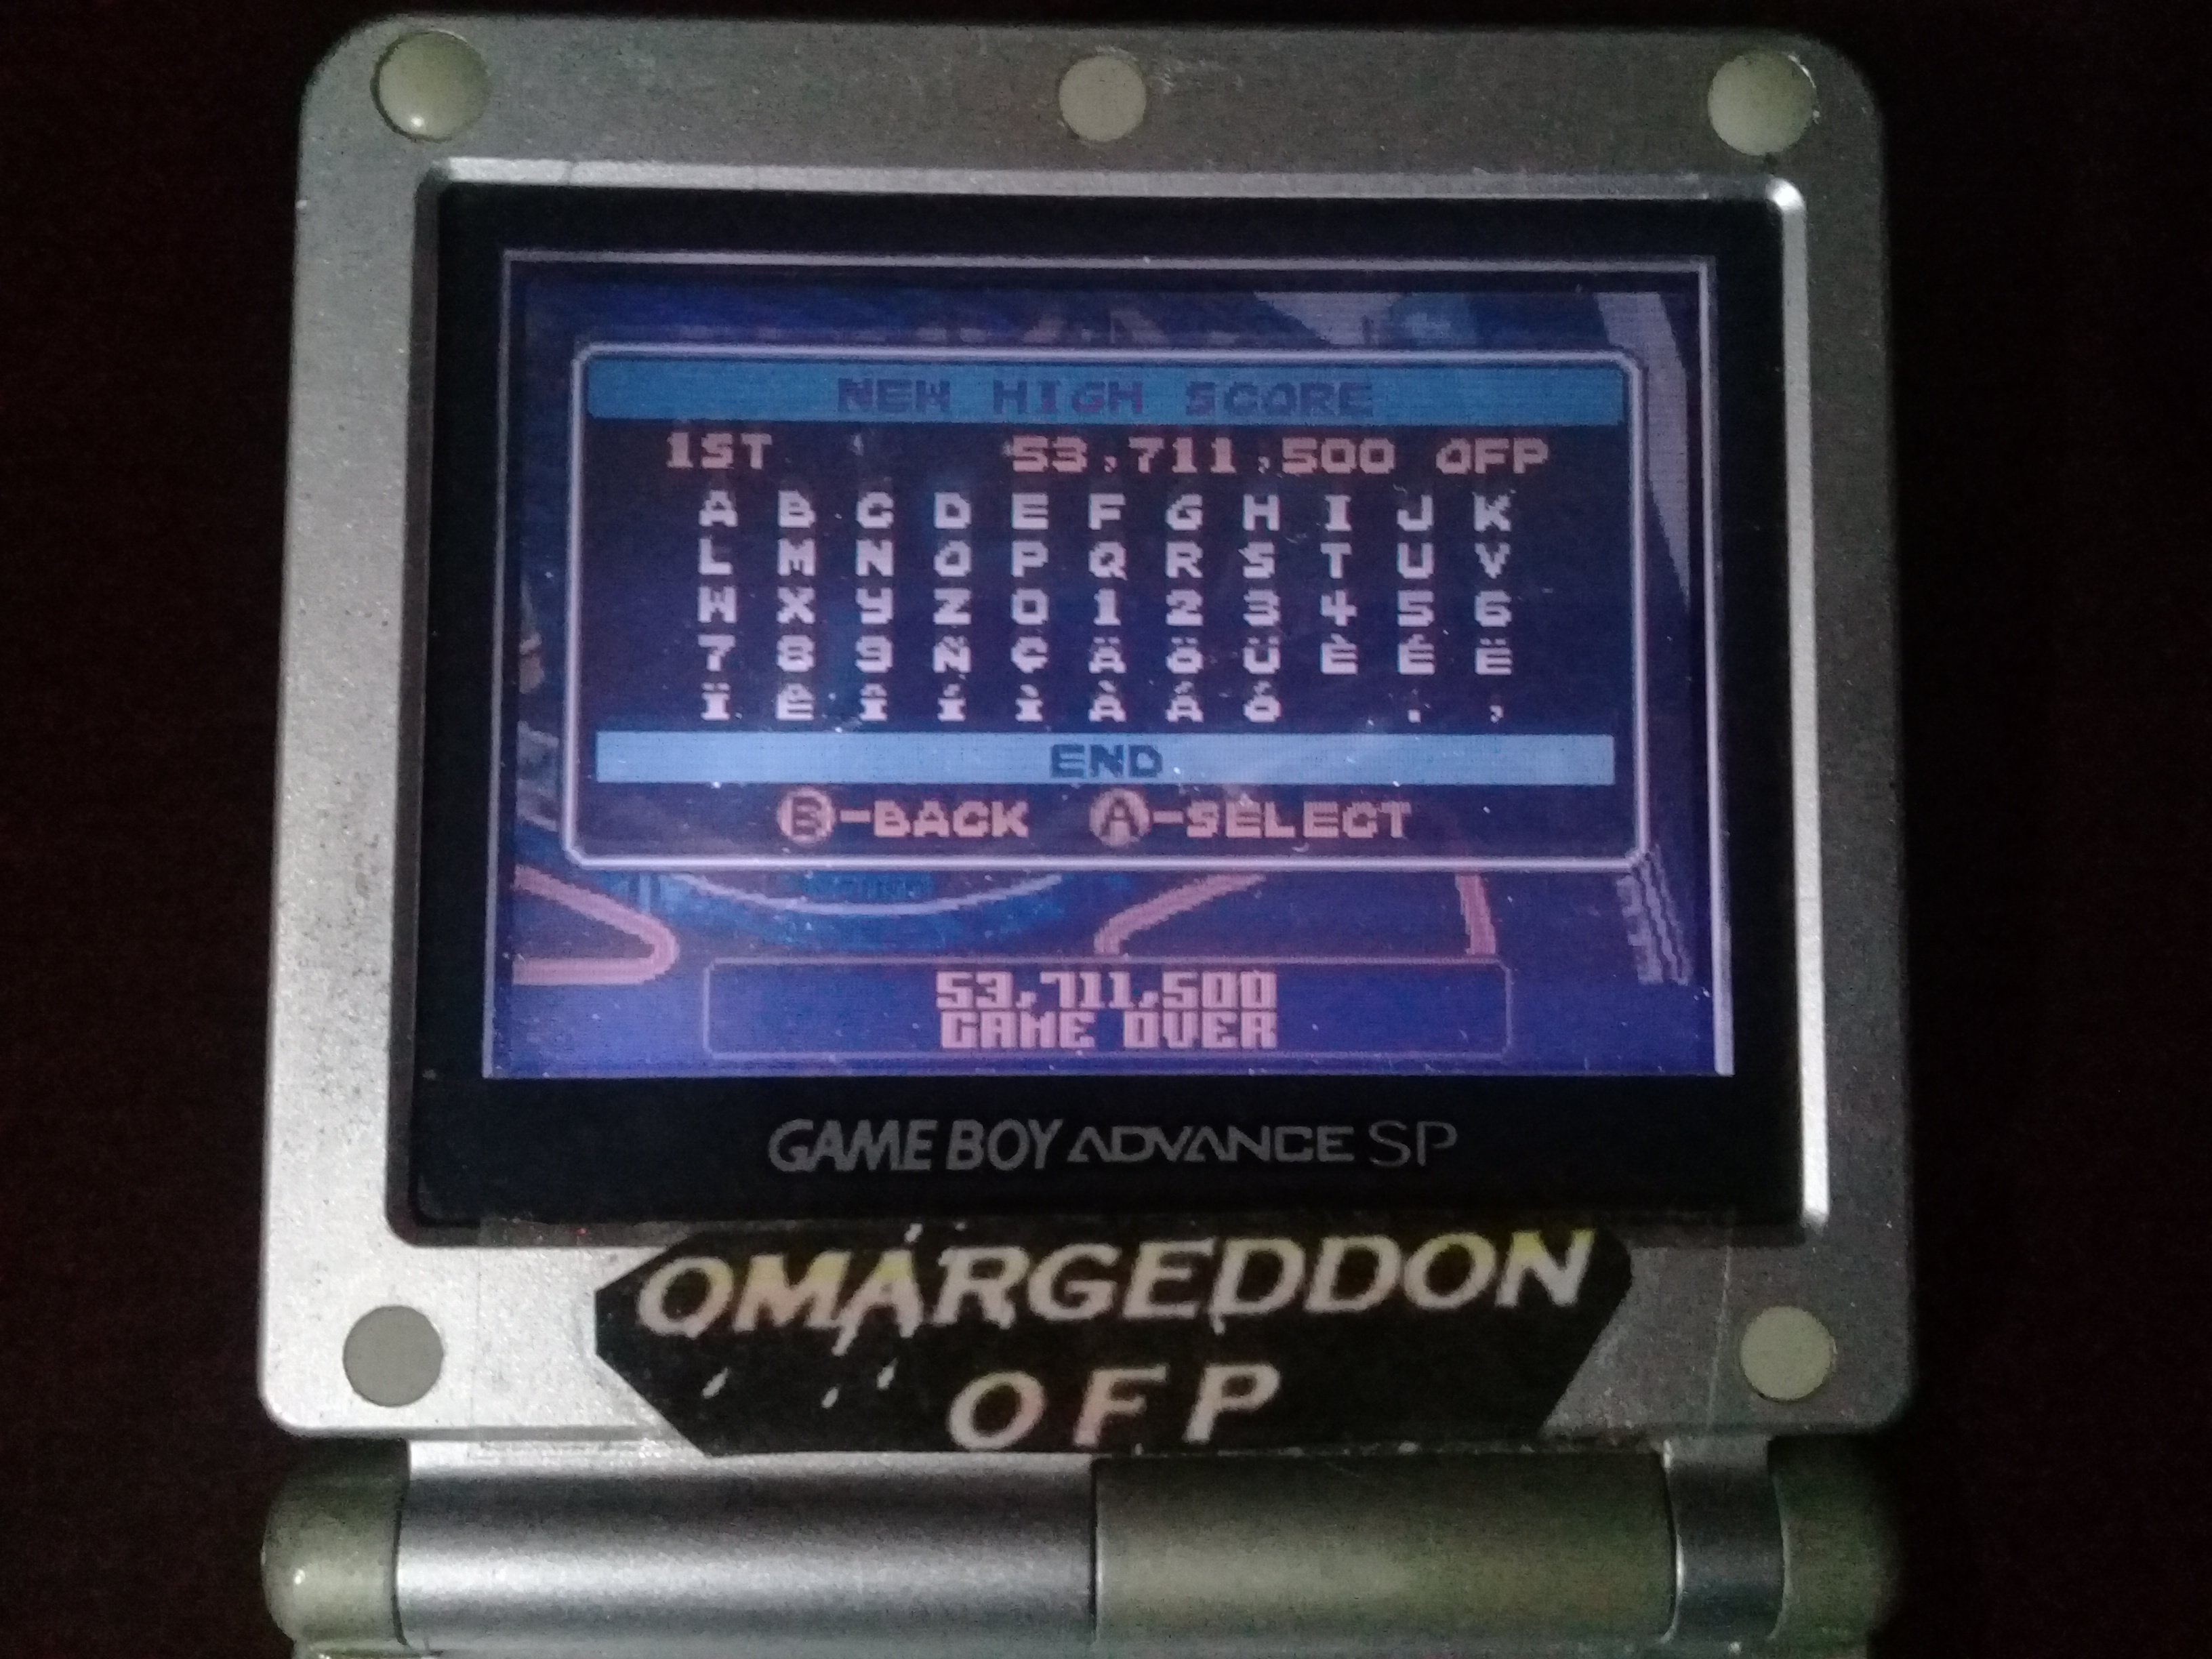 omargeddon: Pinball Advance: Jailbreak [5 Balls] [Easy] (GBA) 53,711,500 points on 2019-10-13 11:15:08